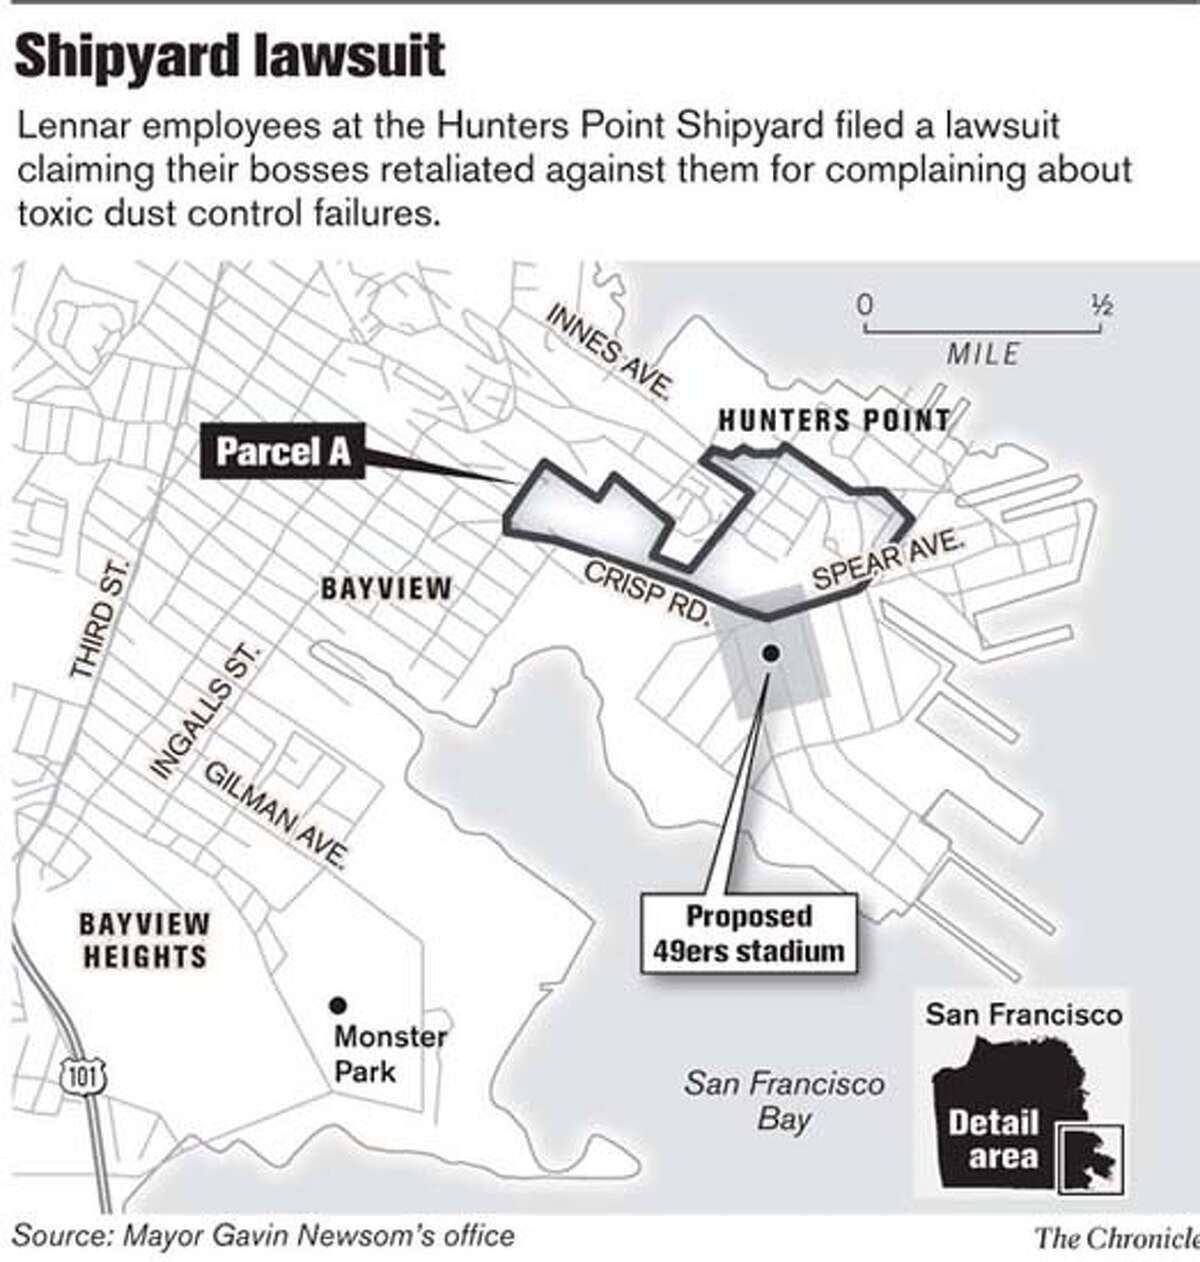 Shipyard Lawsuit. Chronicle Graphic